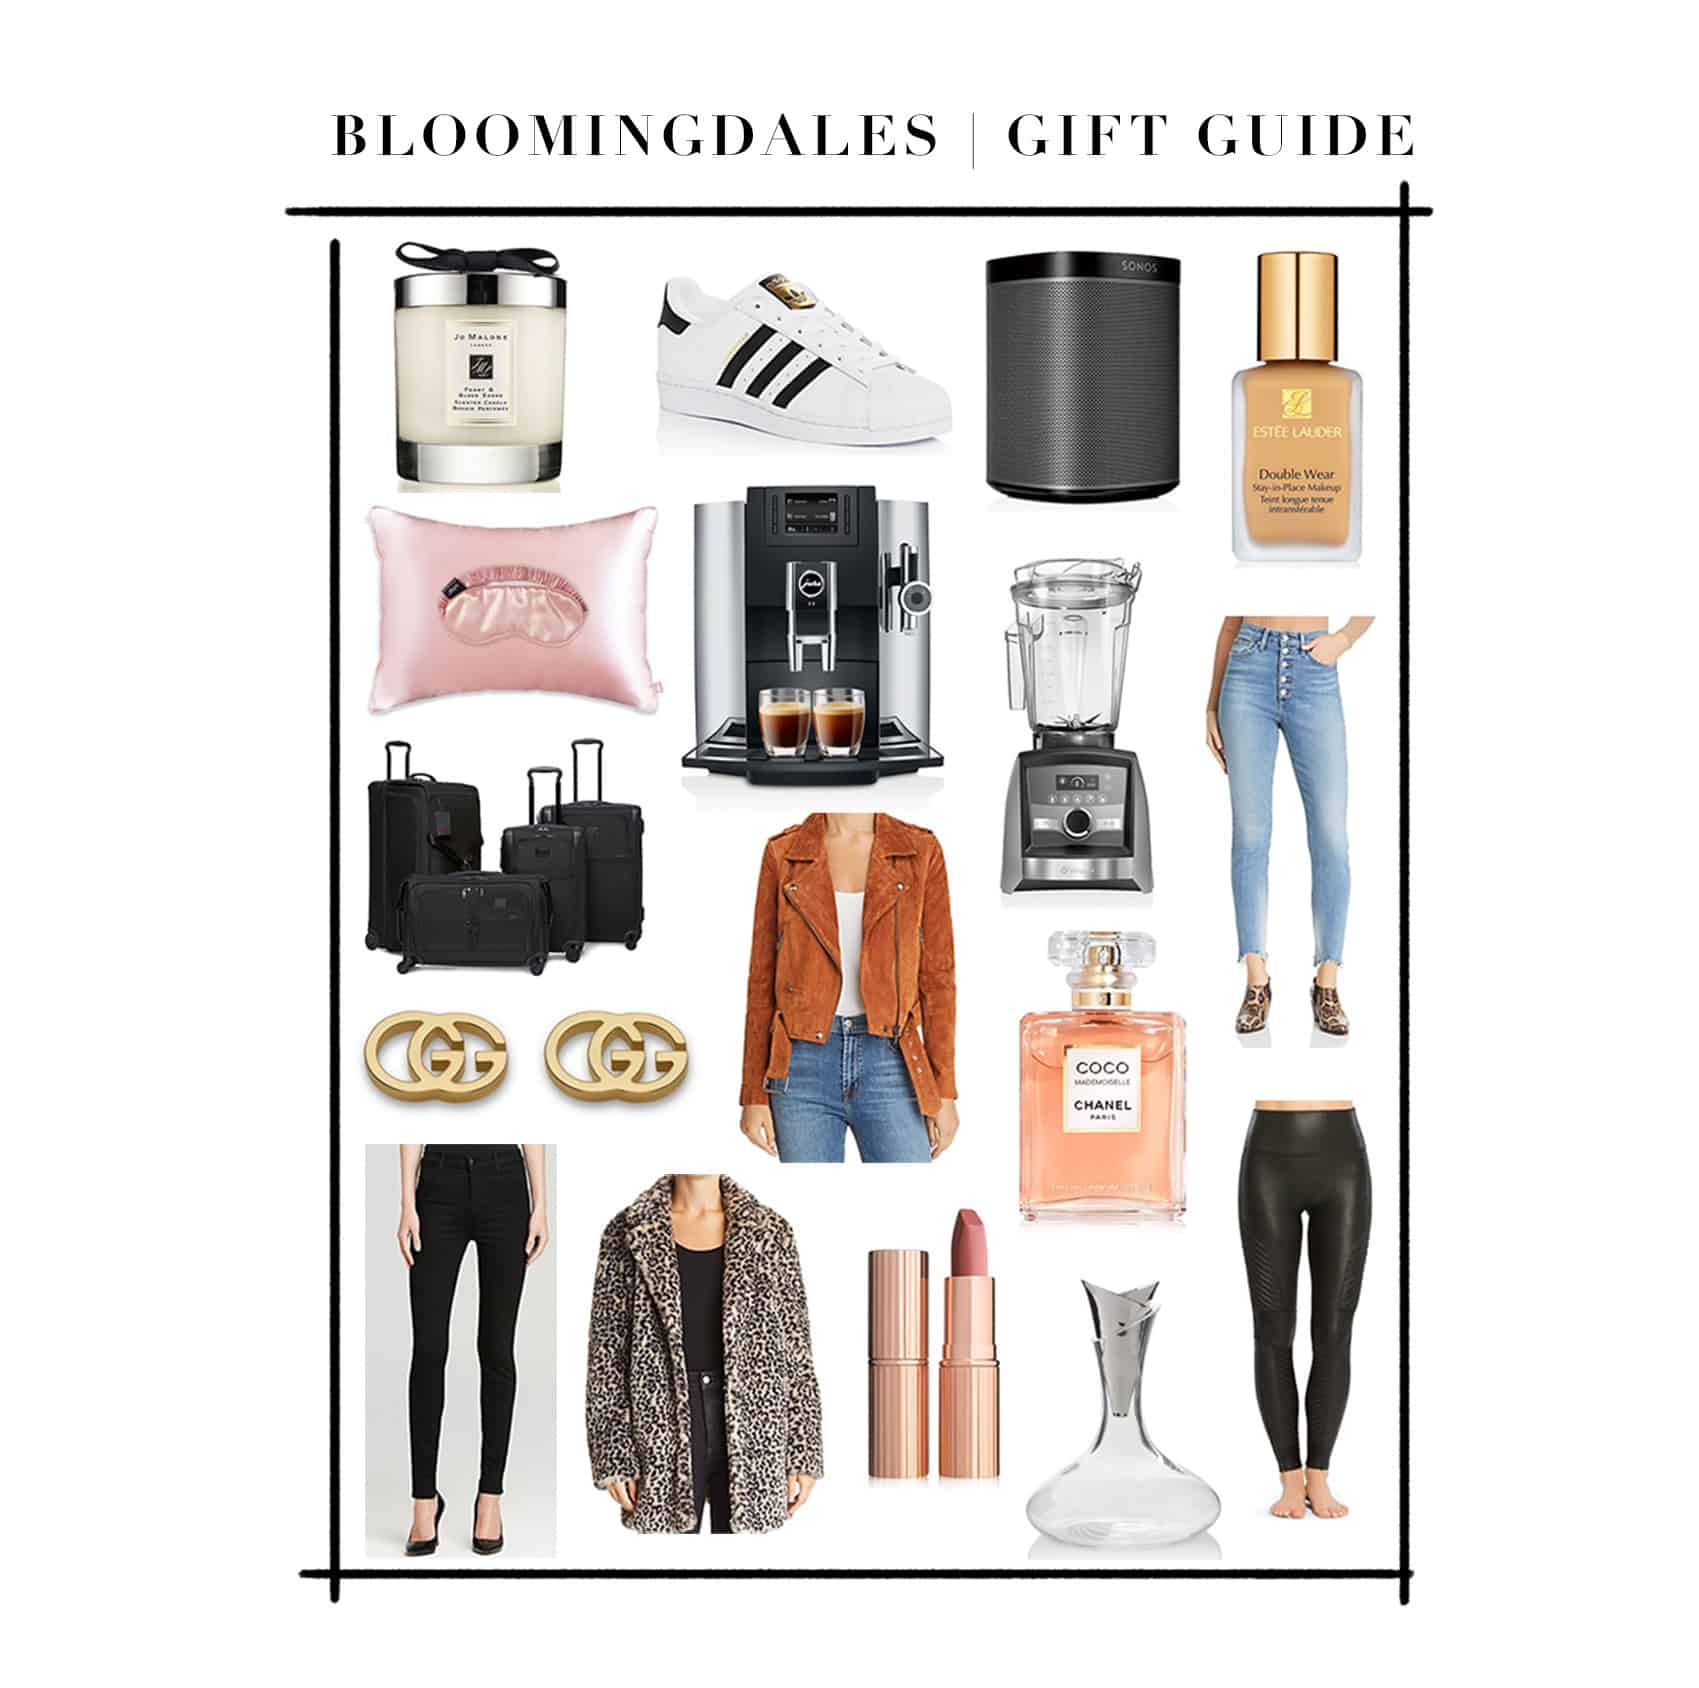 Bloomingdales Gift Guide